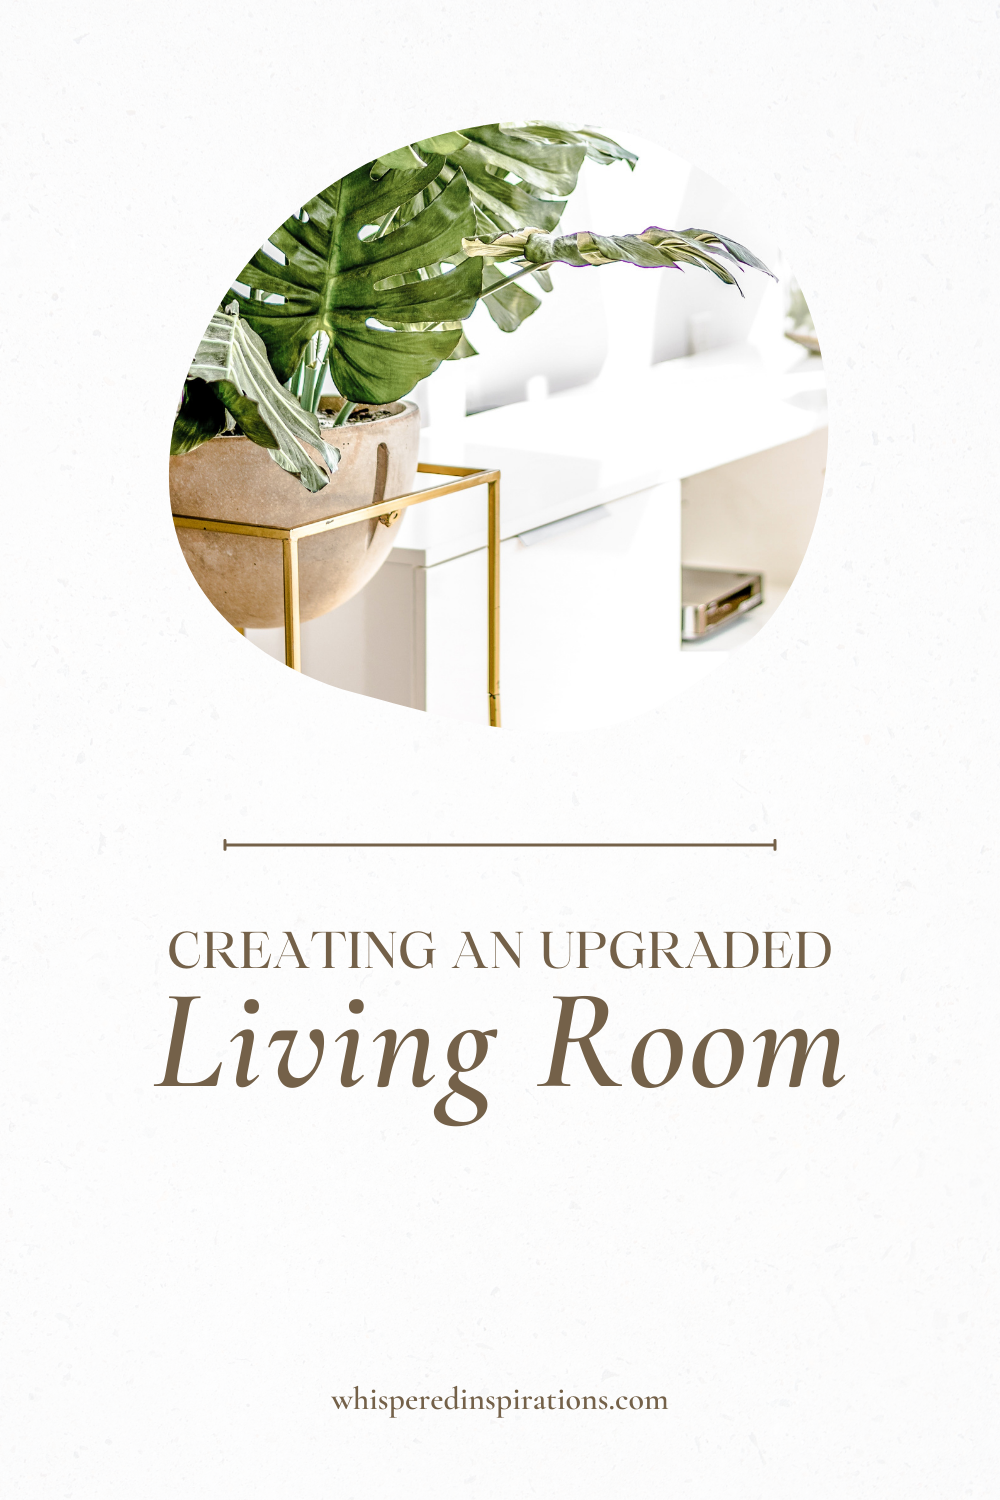 A beautiful, bright, living room. This article covers tips for creating an upgraded living room.